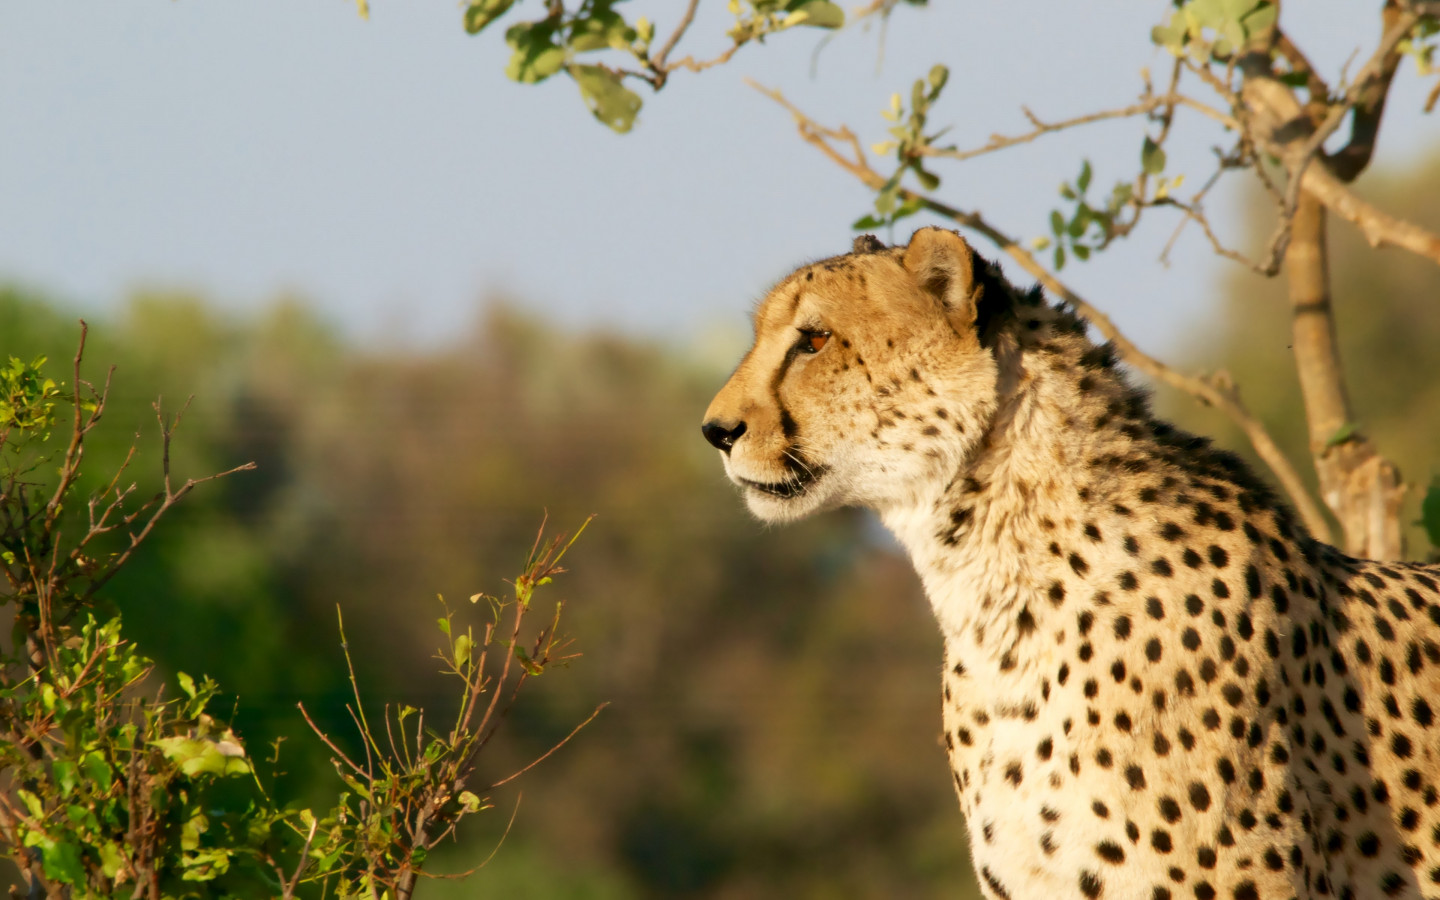 Cheetah in Ngamiland East, Botswana wallpaper 1440x900